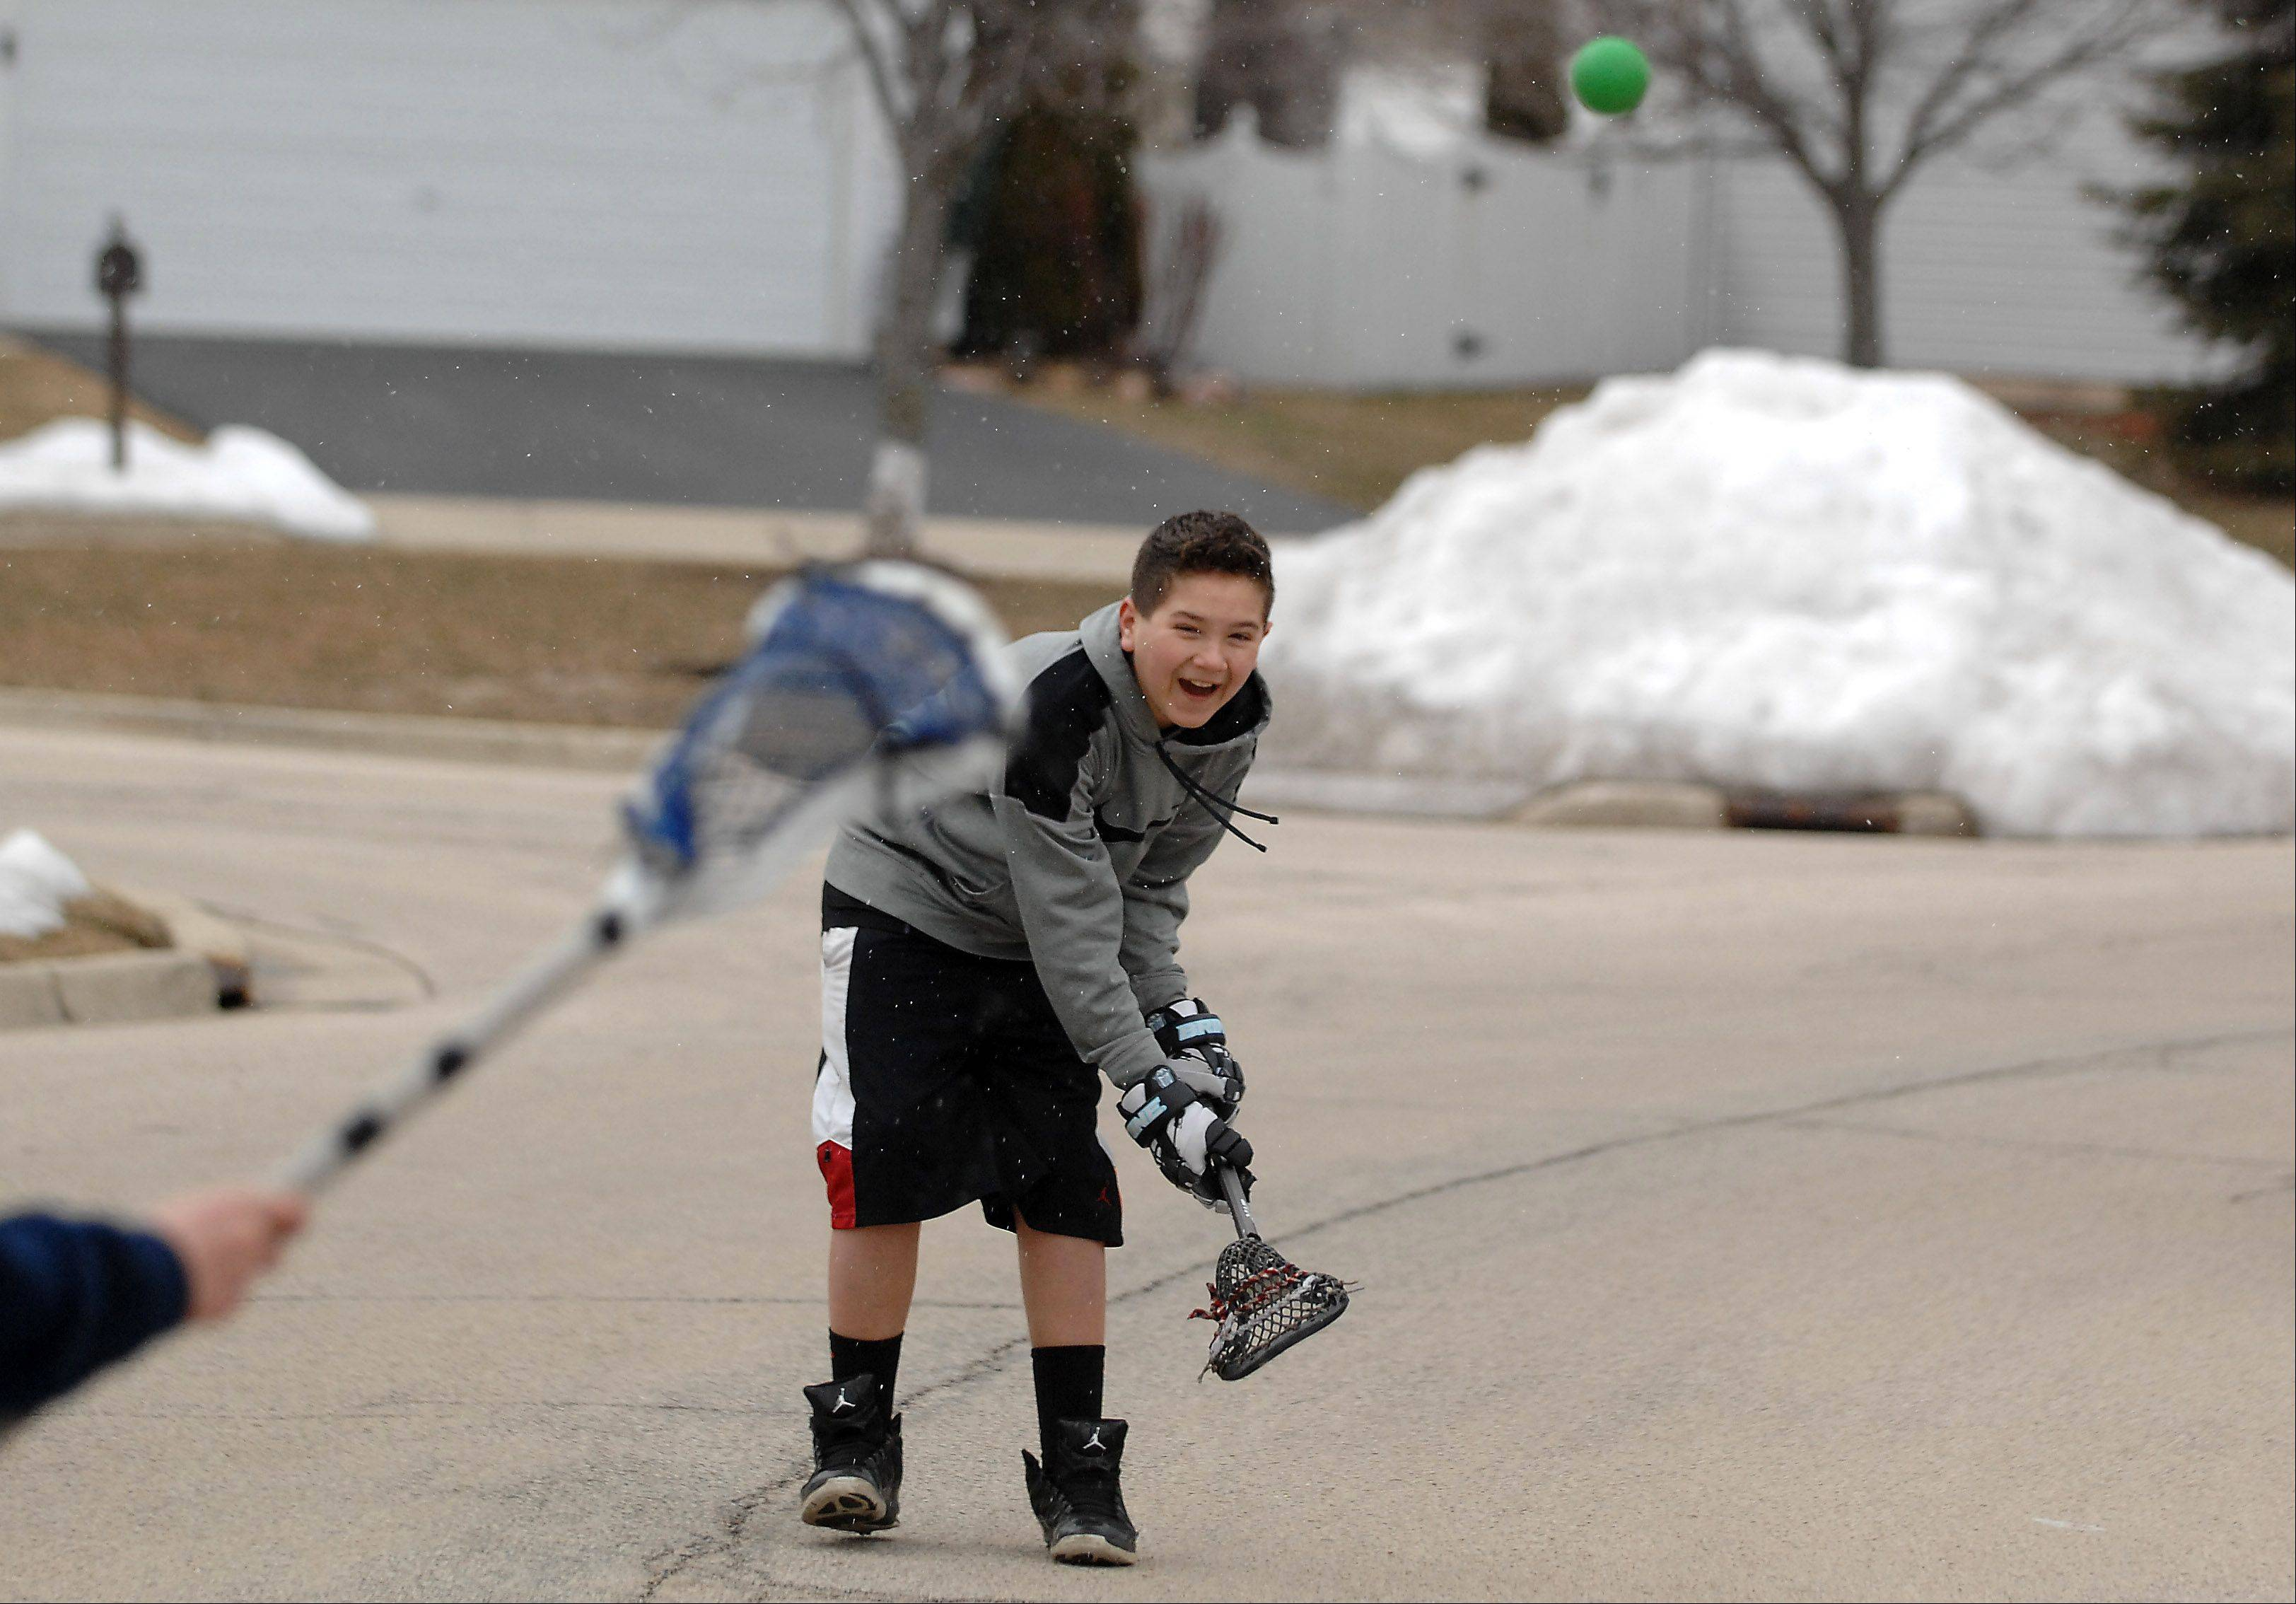 "Nathan Carrillo, 13, throws the ball to Connor McGuffin, 14, as they play lacrosse in the street in their South Elgin neighborhood on their first day of spring break from Kenyon Woods Middle School Monday. ""This the coldest I've ever been on spring break,"" said the shorts-clad Carrillo. The kids both play for Mid-Valley Lacrosse and weren't going to let a little cold and snow stop them from practicing."